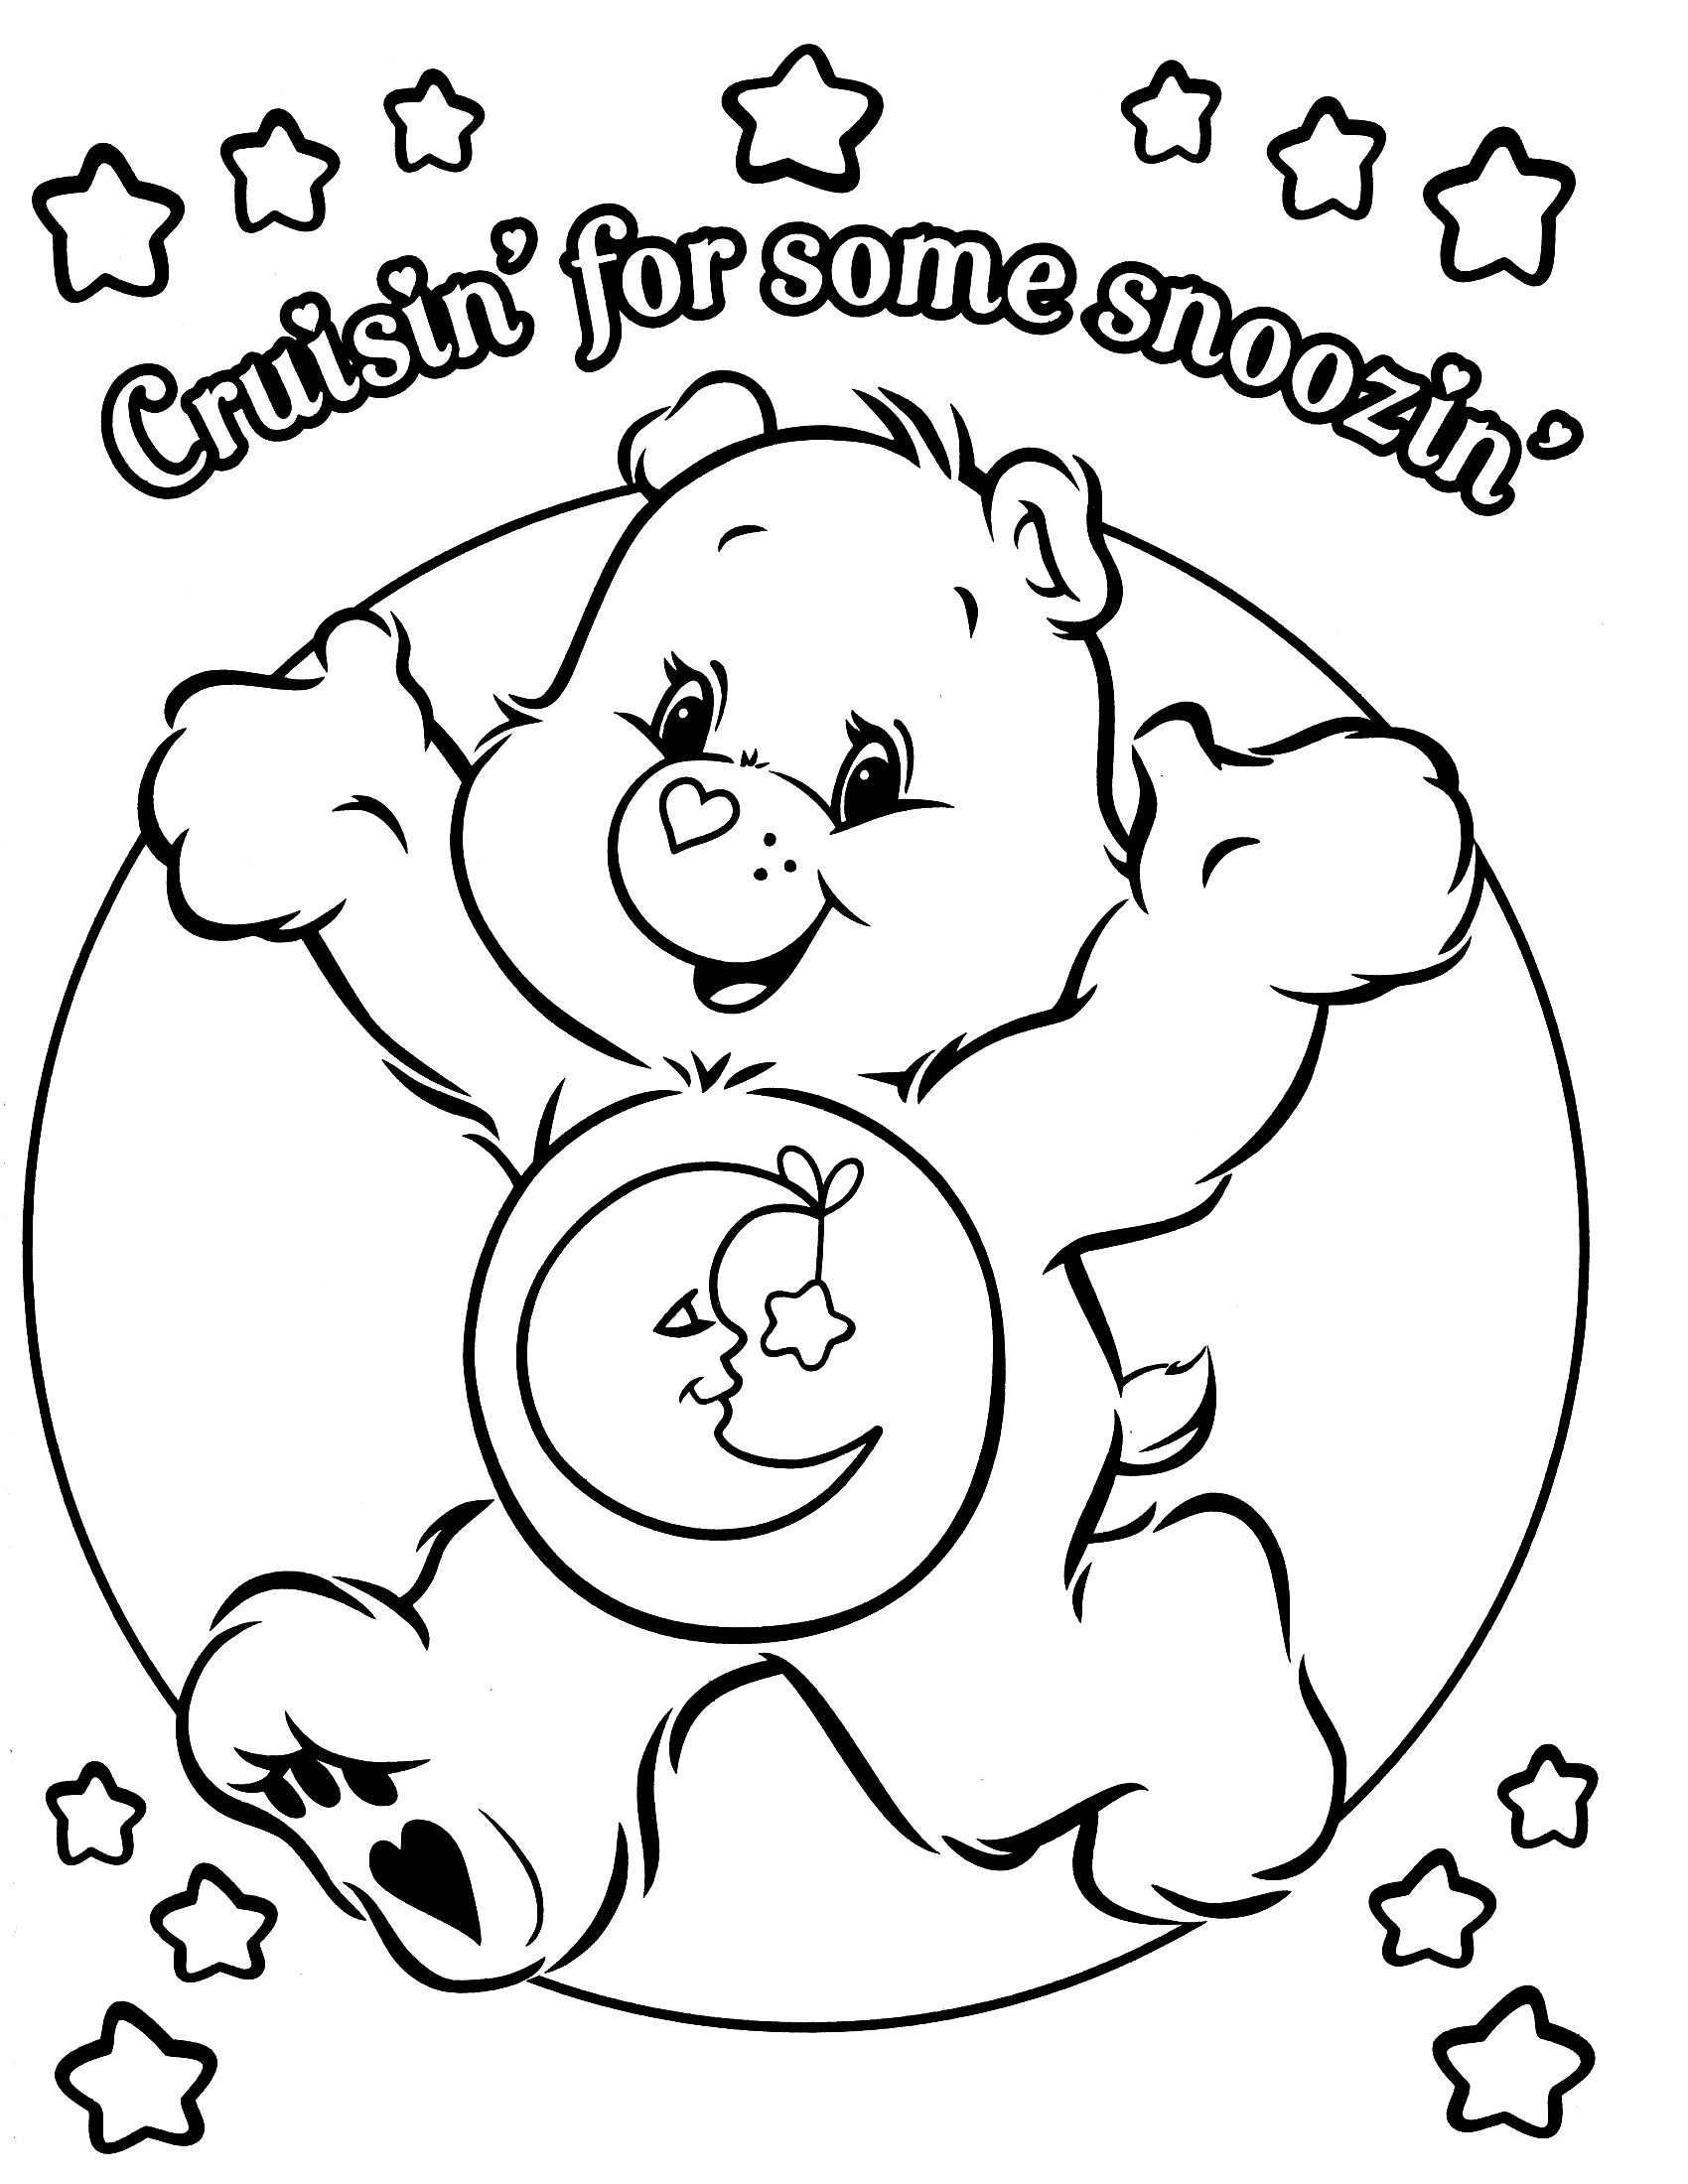 care bears cousins coloring pages - photo#21